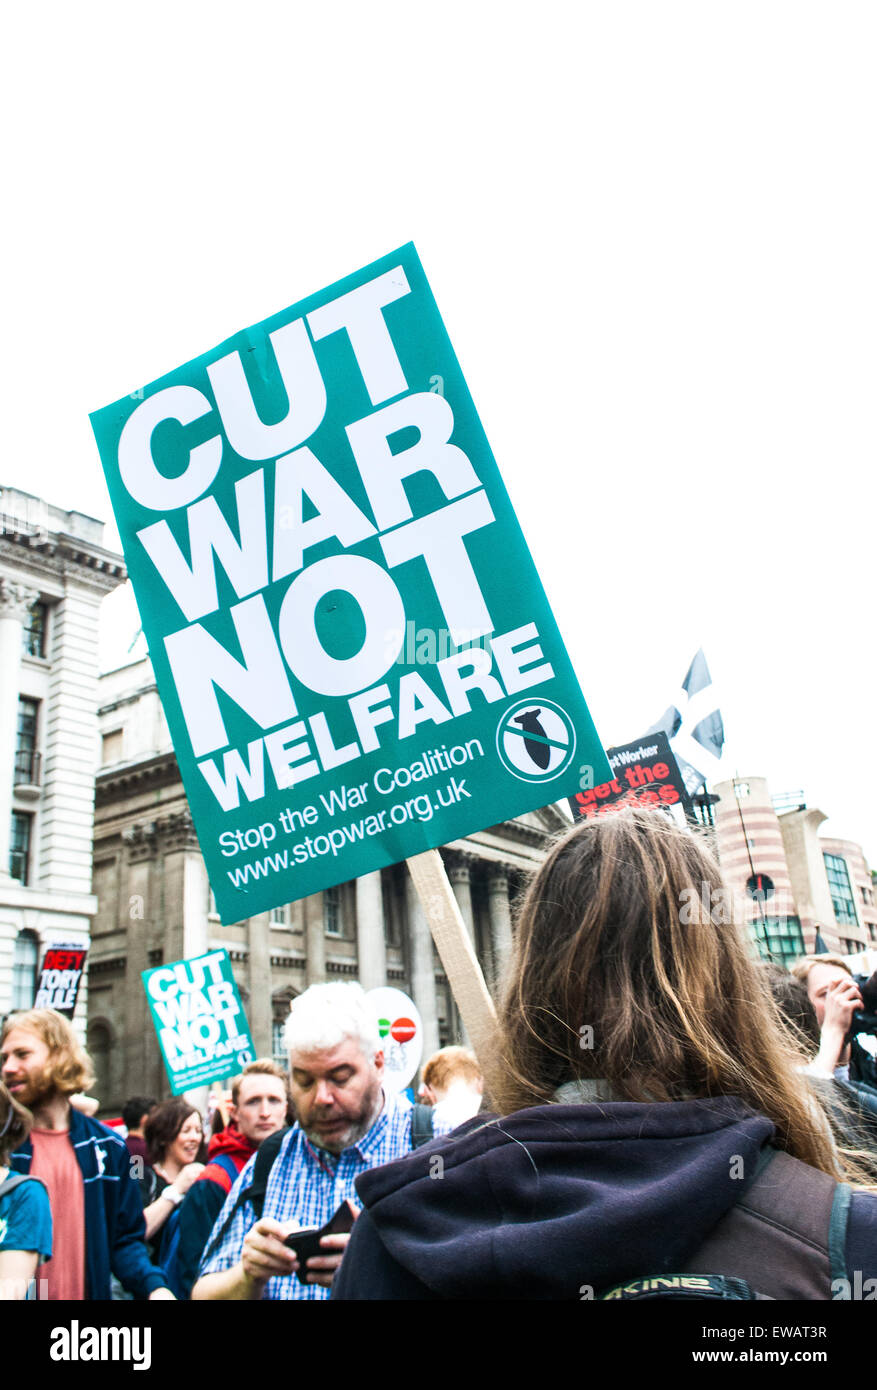 Anti Austerity sign at the London Protest, June 2015 - Stock Image